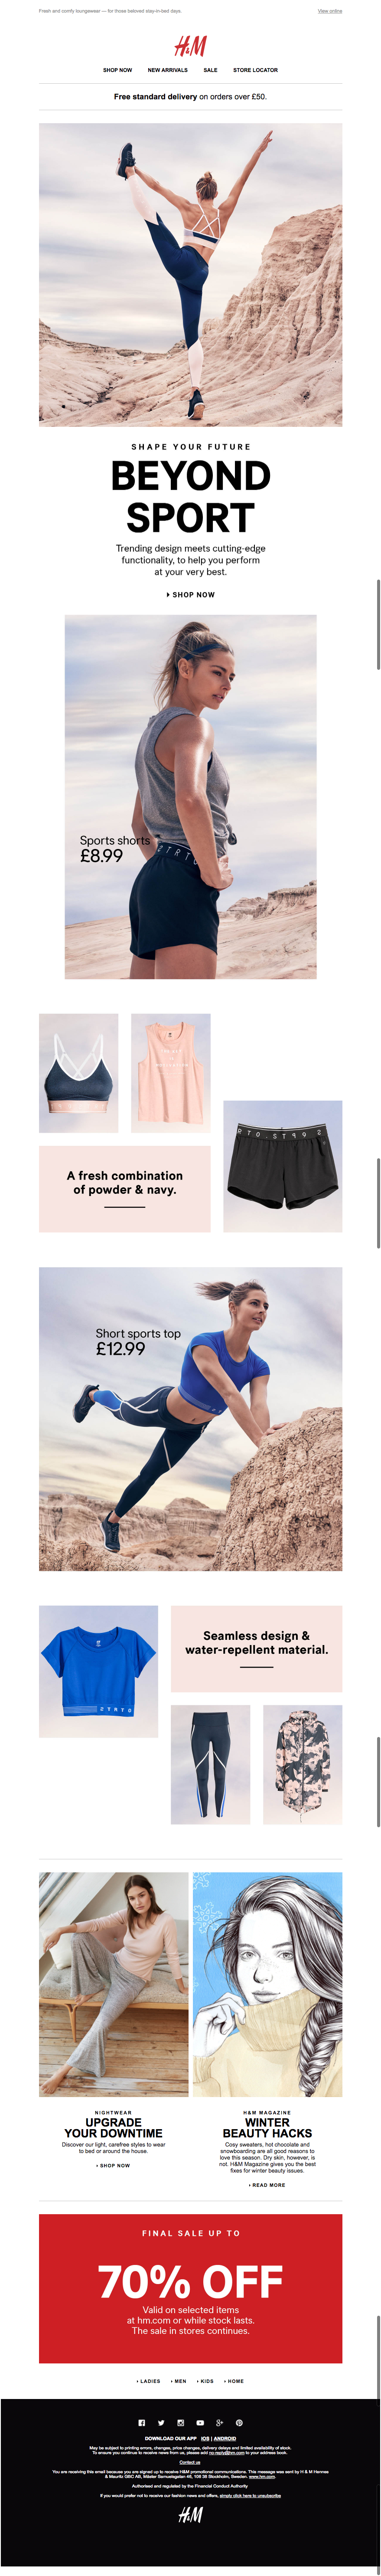 h and m beyond sport email 06.01.2017